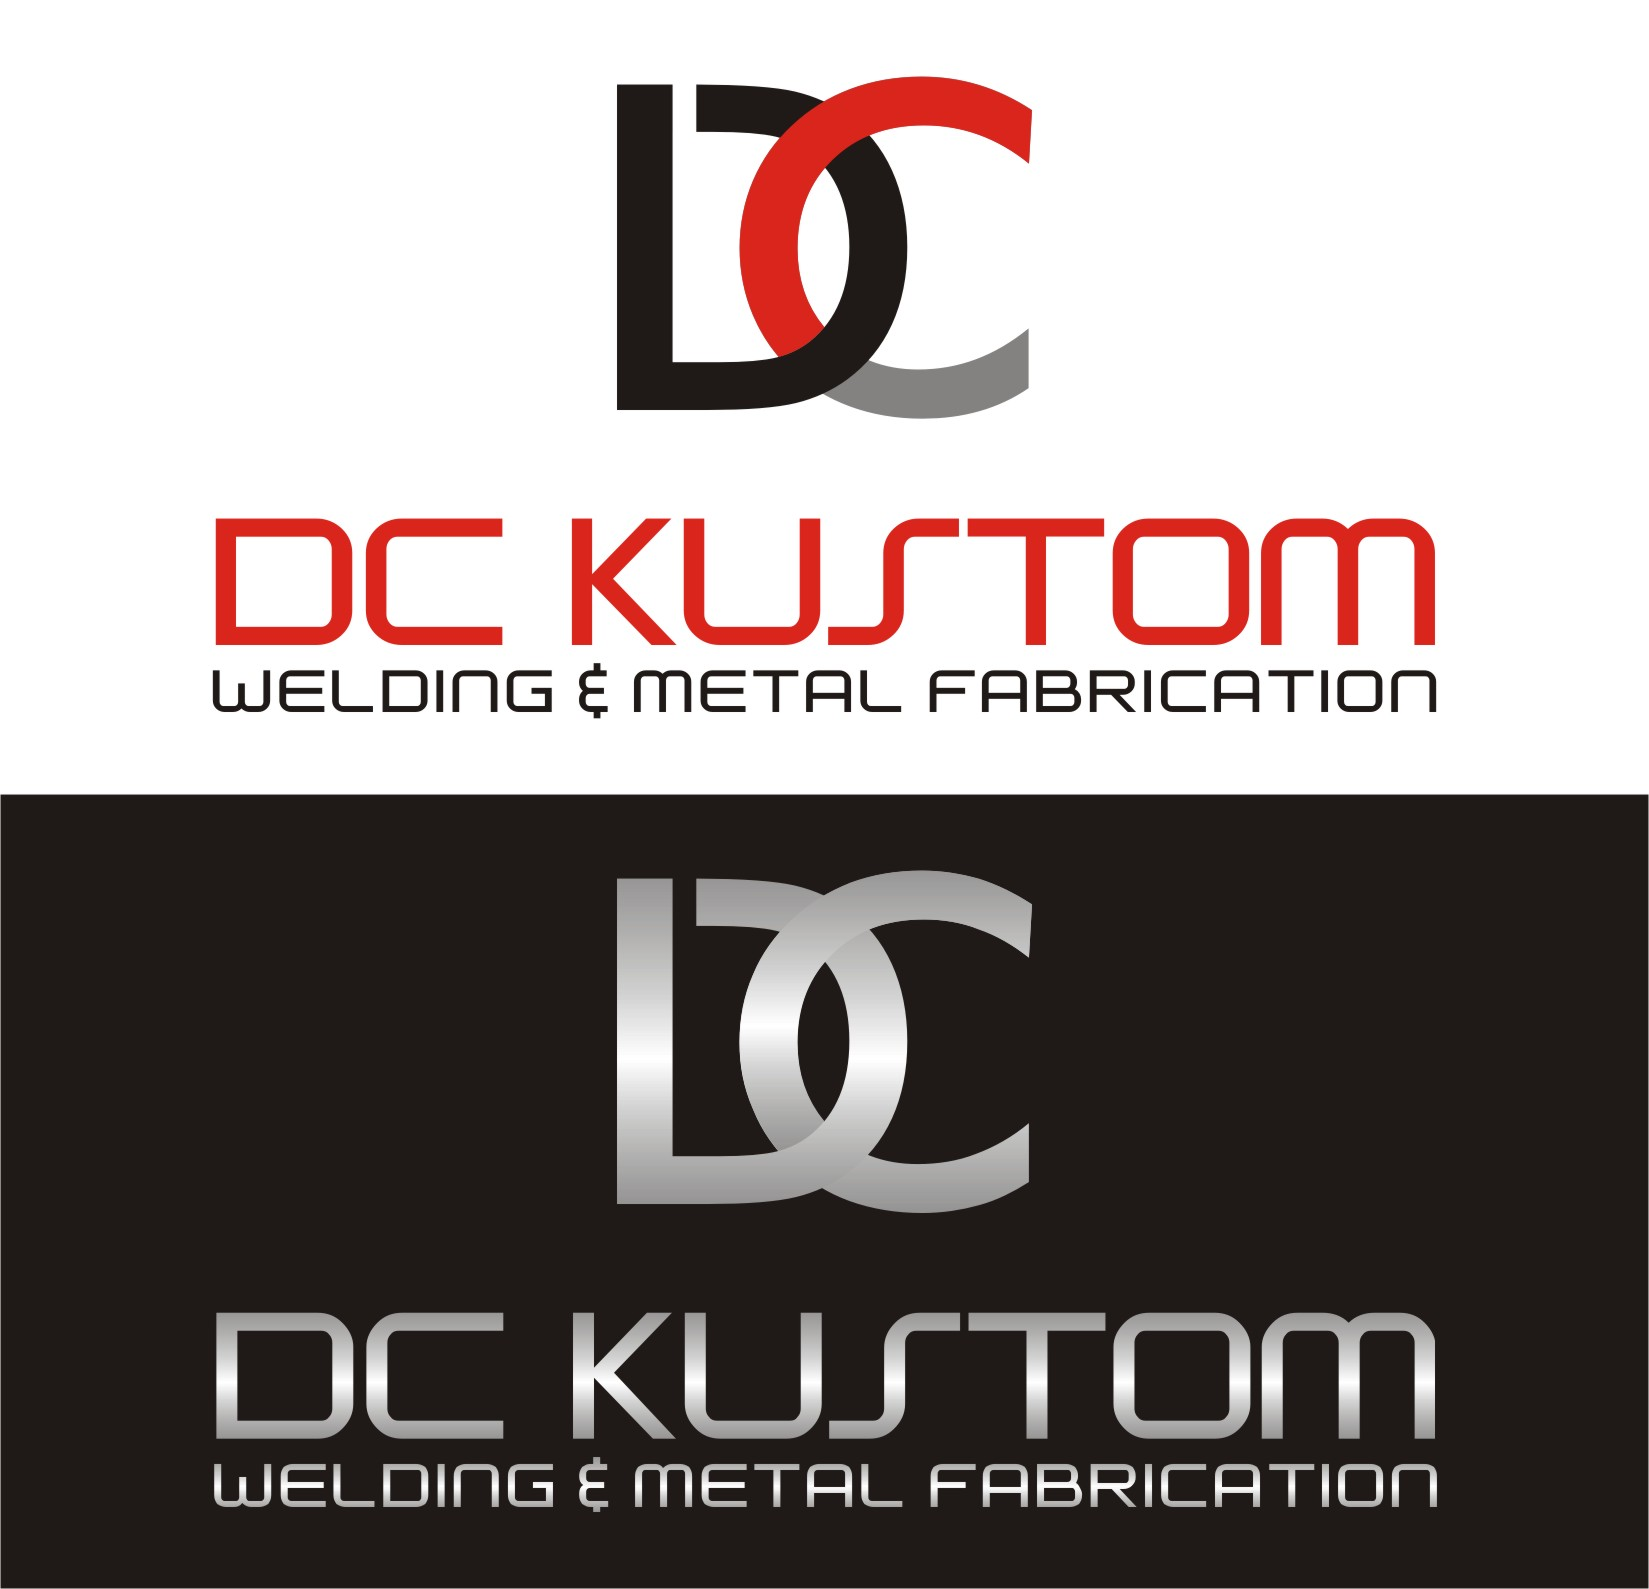 Logo Design by I graphics GRAPHICS - Entry No. 136 in the Logo Design Contest Imaginative Logo Design for DC KUSTOM WELDING & METAL FABRICATION.